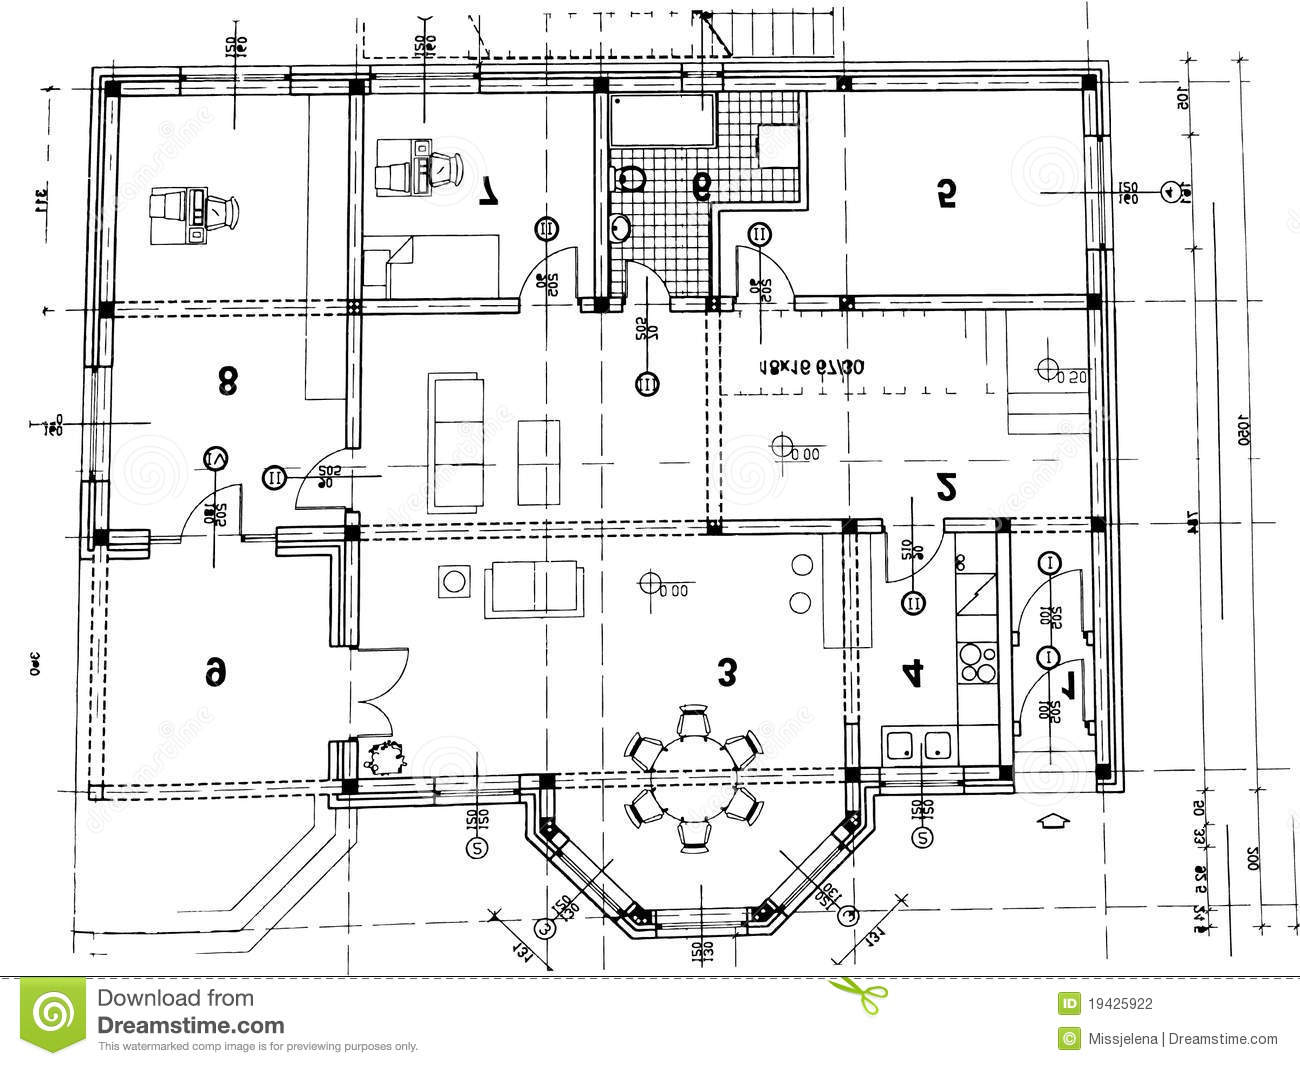 Plan Architectural Illustration De Vecteur Illustration